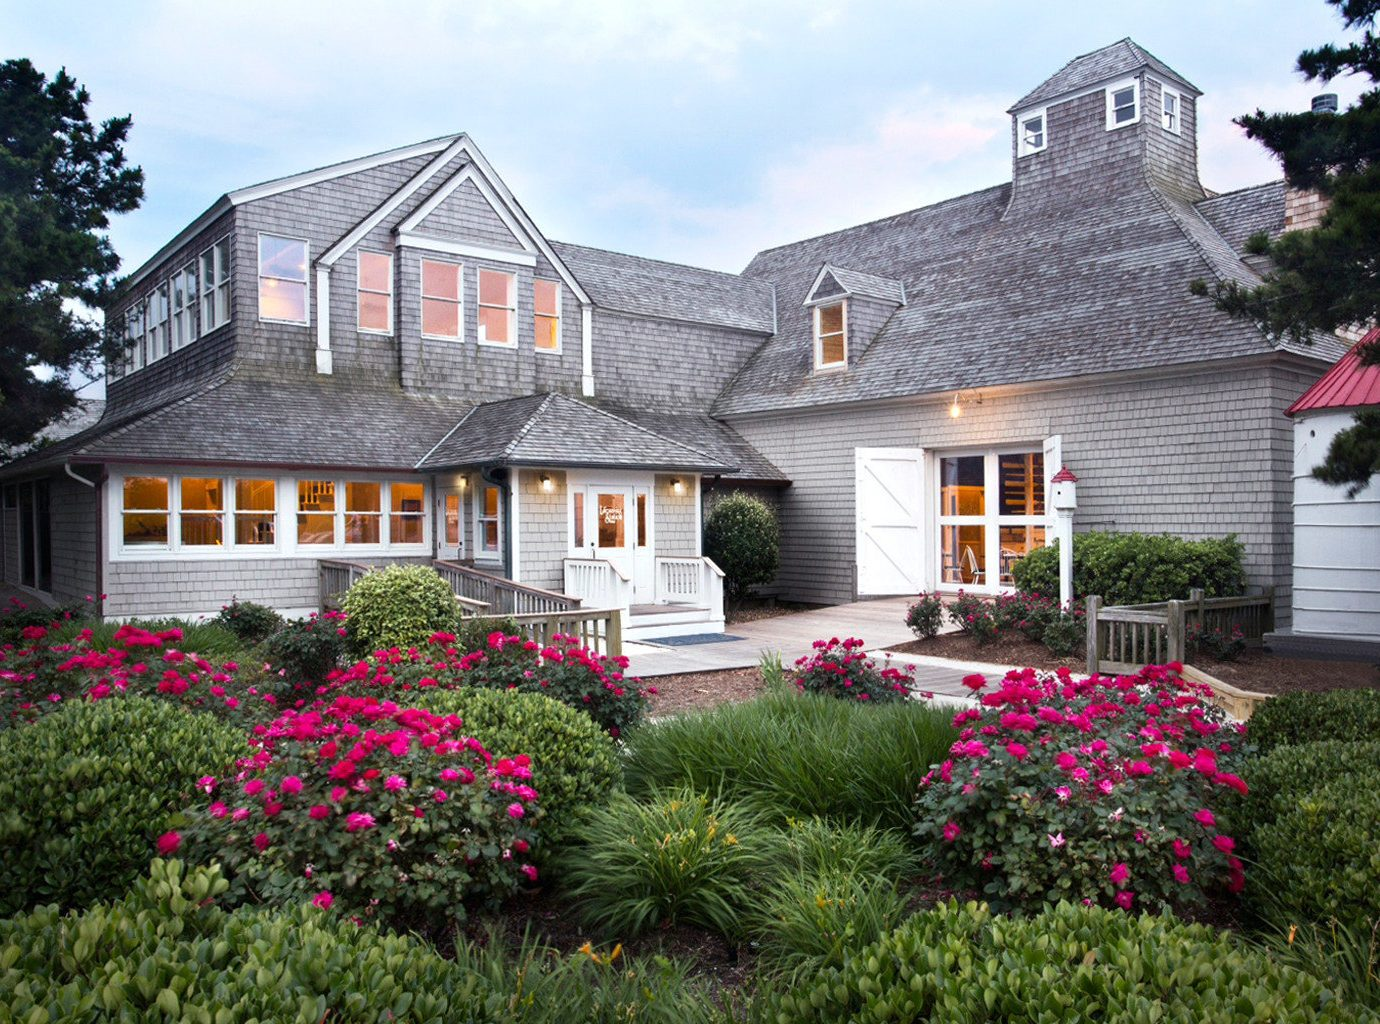 Beachfront Exterior Grounds Resort Trip Ideas Waterfront tree outdoor sky flower house property home estate building Garden cottage residential area yard lawn farmhouse backyard real estate plant facade mansion manor house Villa landscaping bushes decorated stone surrounded